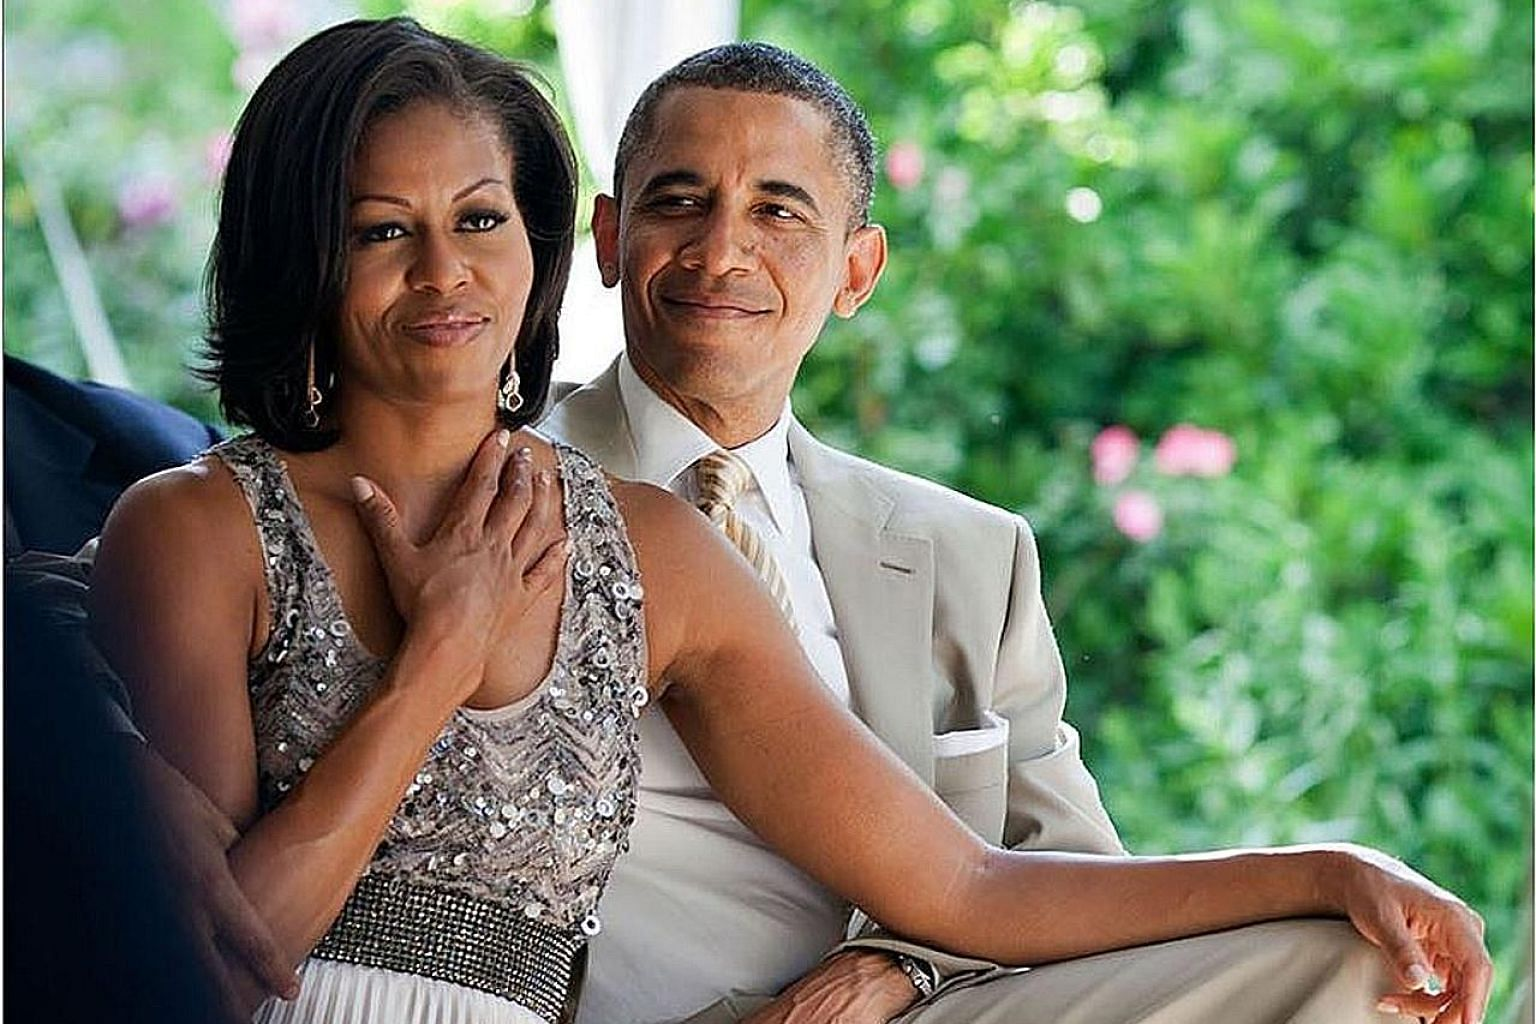 Former United States president Barack Obama and his wife Michelle recently celebrated 27 years of marriage. PHOTO: BARACKOBAMA/INSTAGRAM